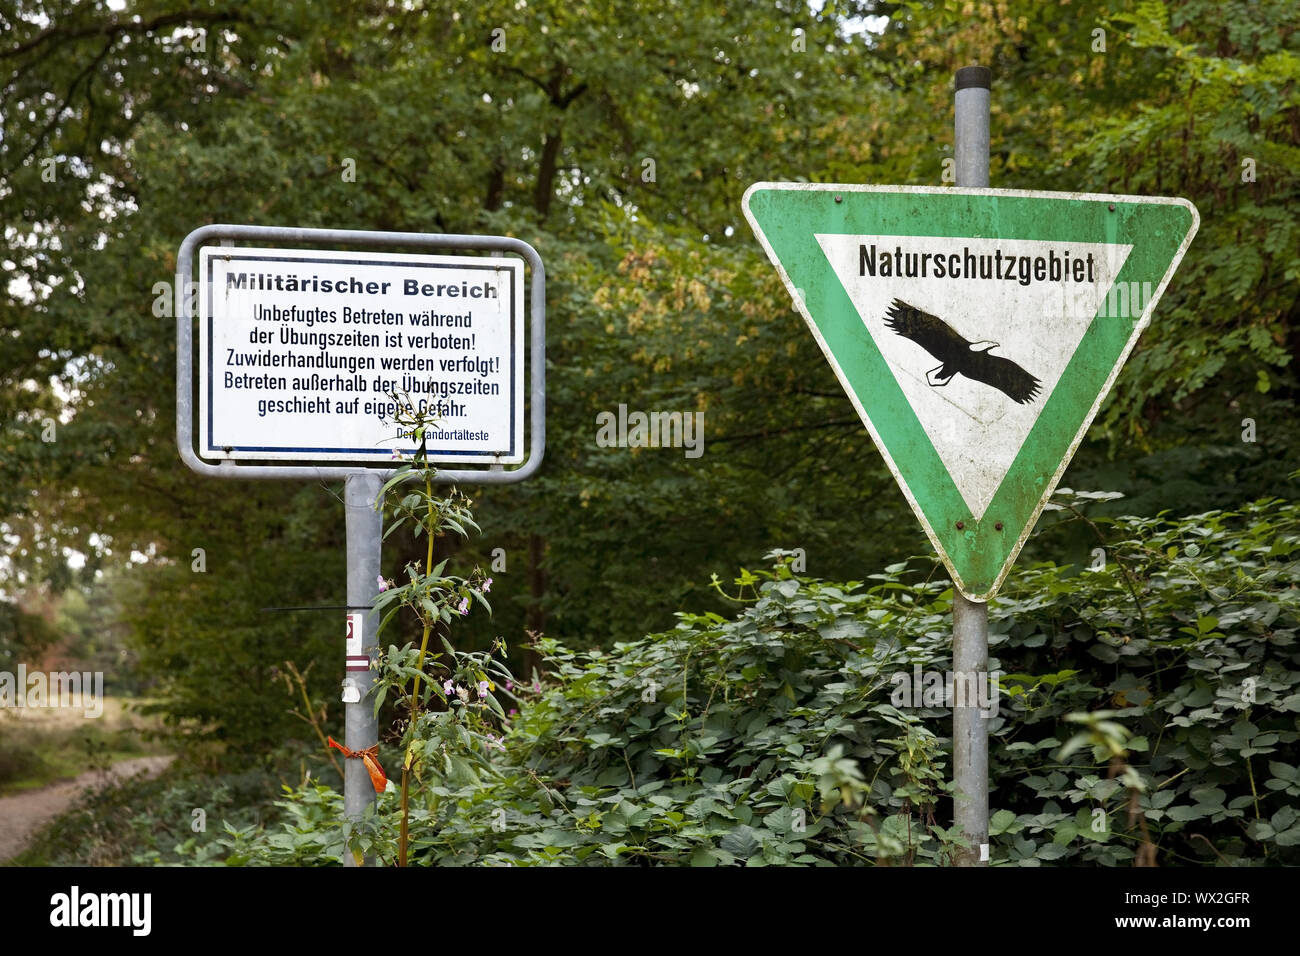 military area and nature reserve signs, Wahner Heide, Troisdorf, Germany, Europe Stock Photo